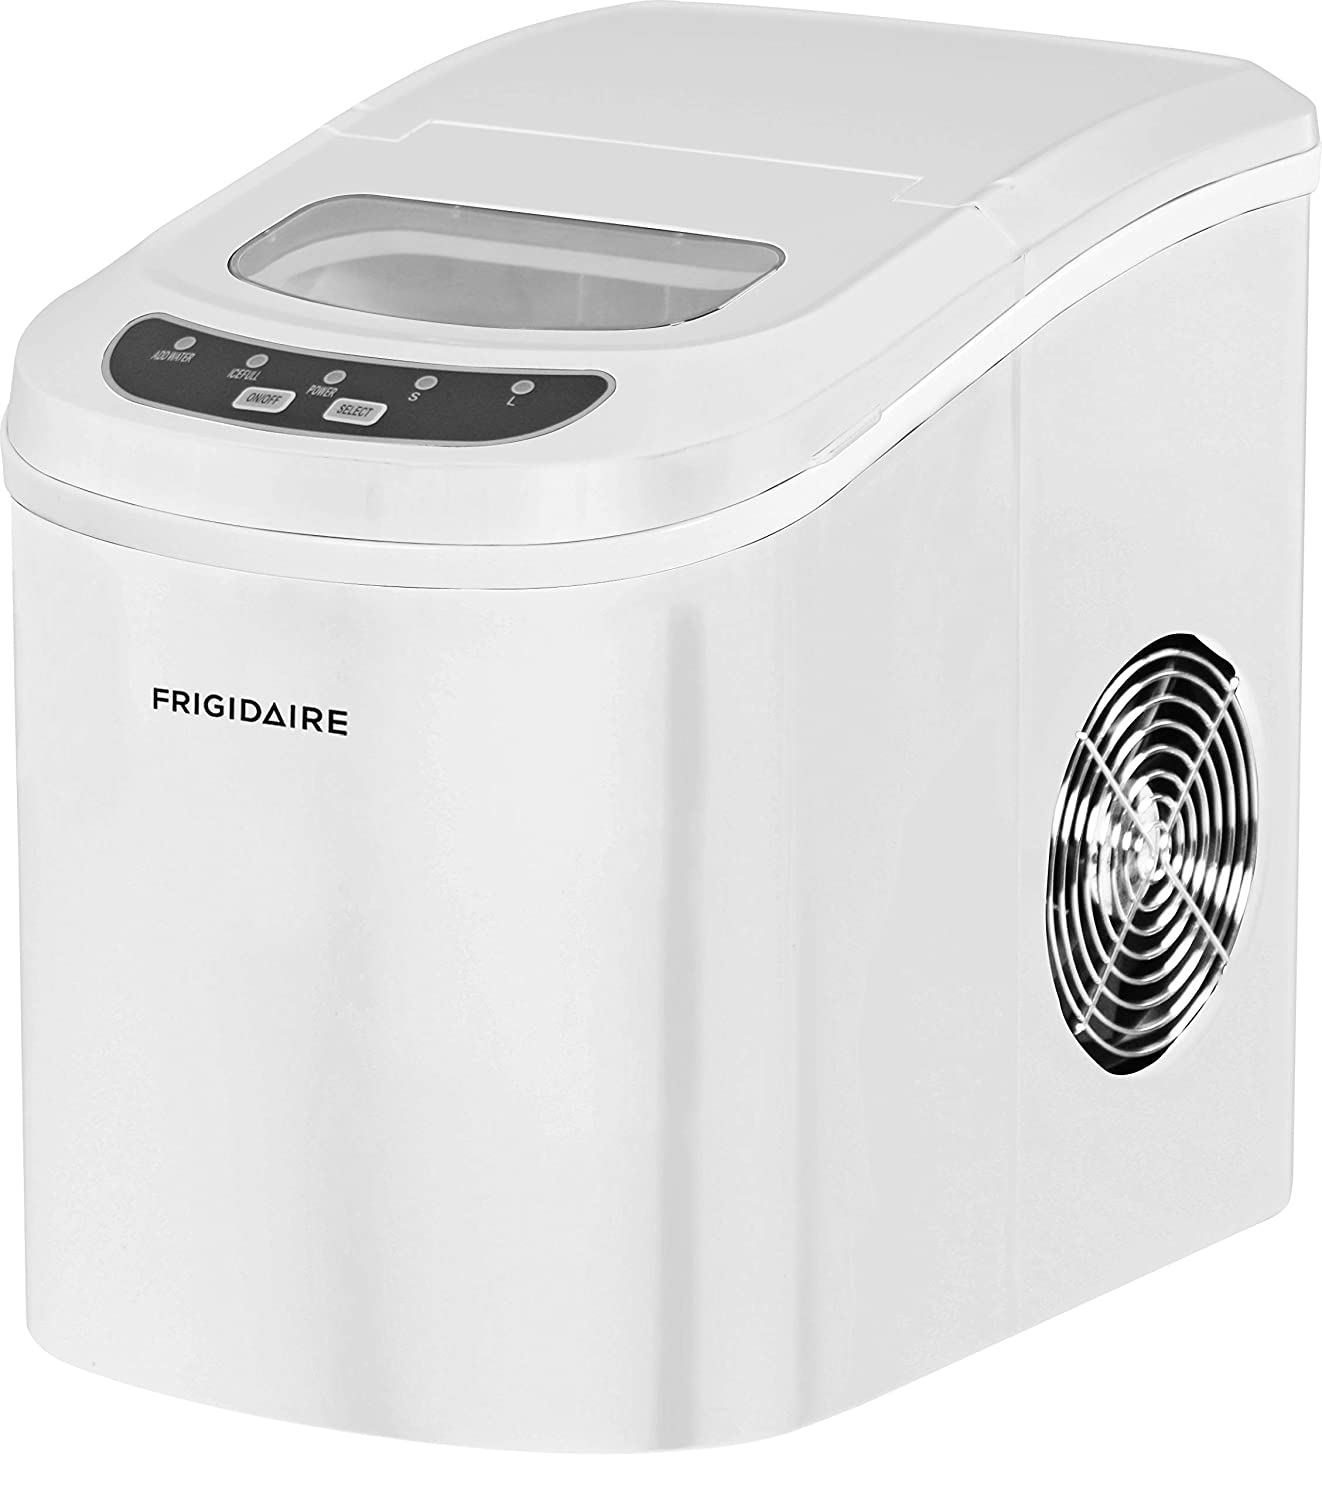 FRIGIDAIRE Portable Compact Countertop Ice Maker Machine